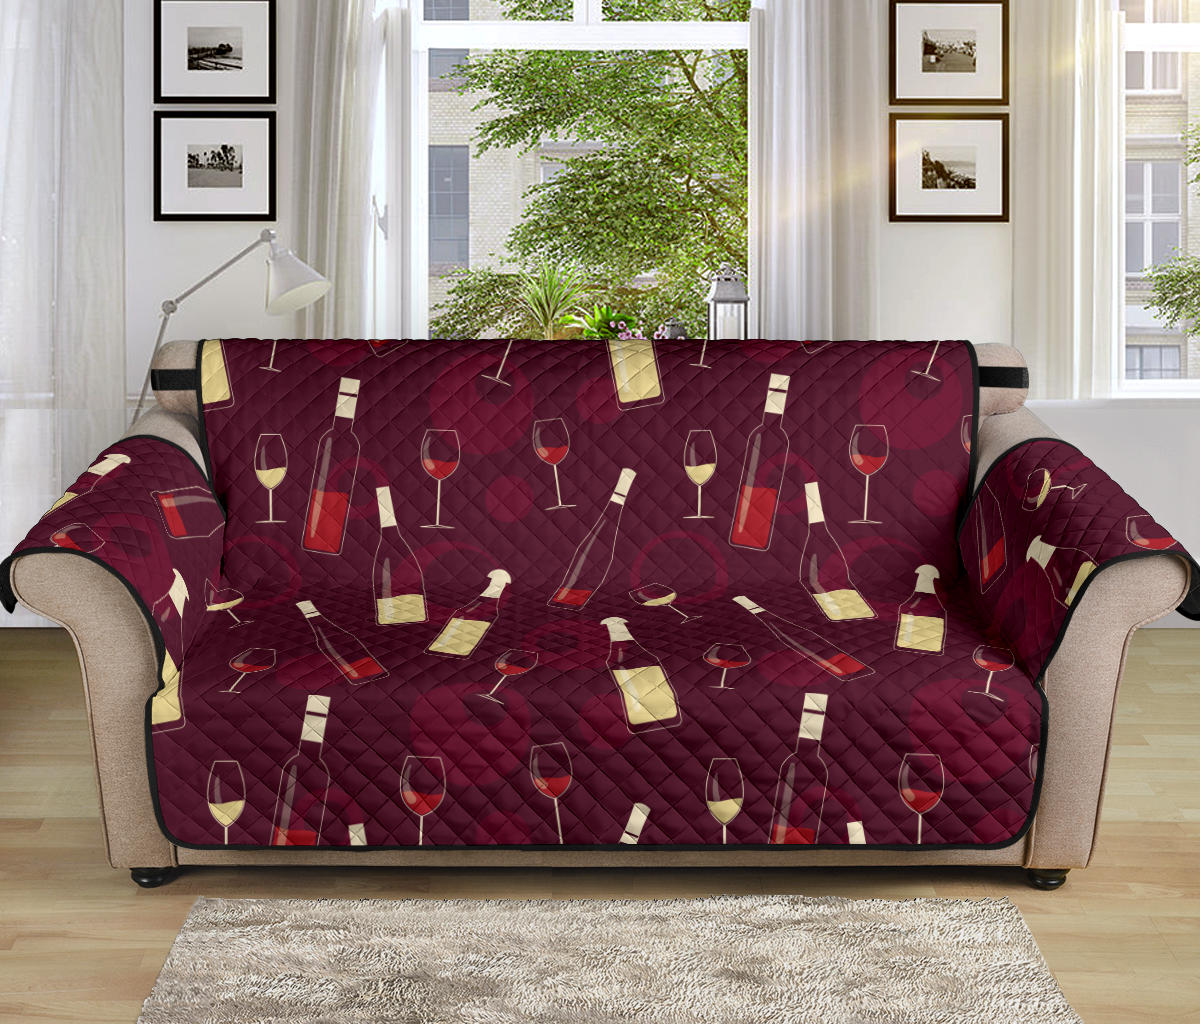 Wine Themed Pattern Print Sofa Cover Protector